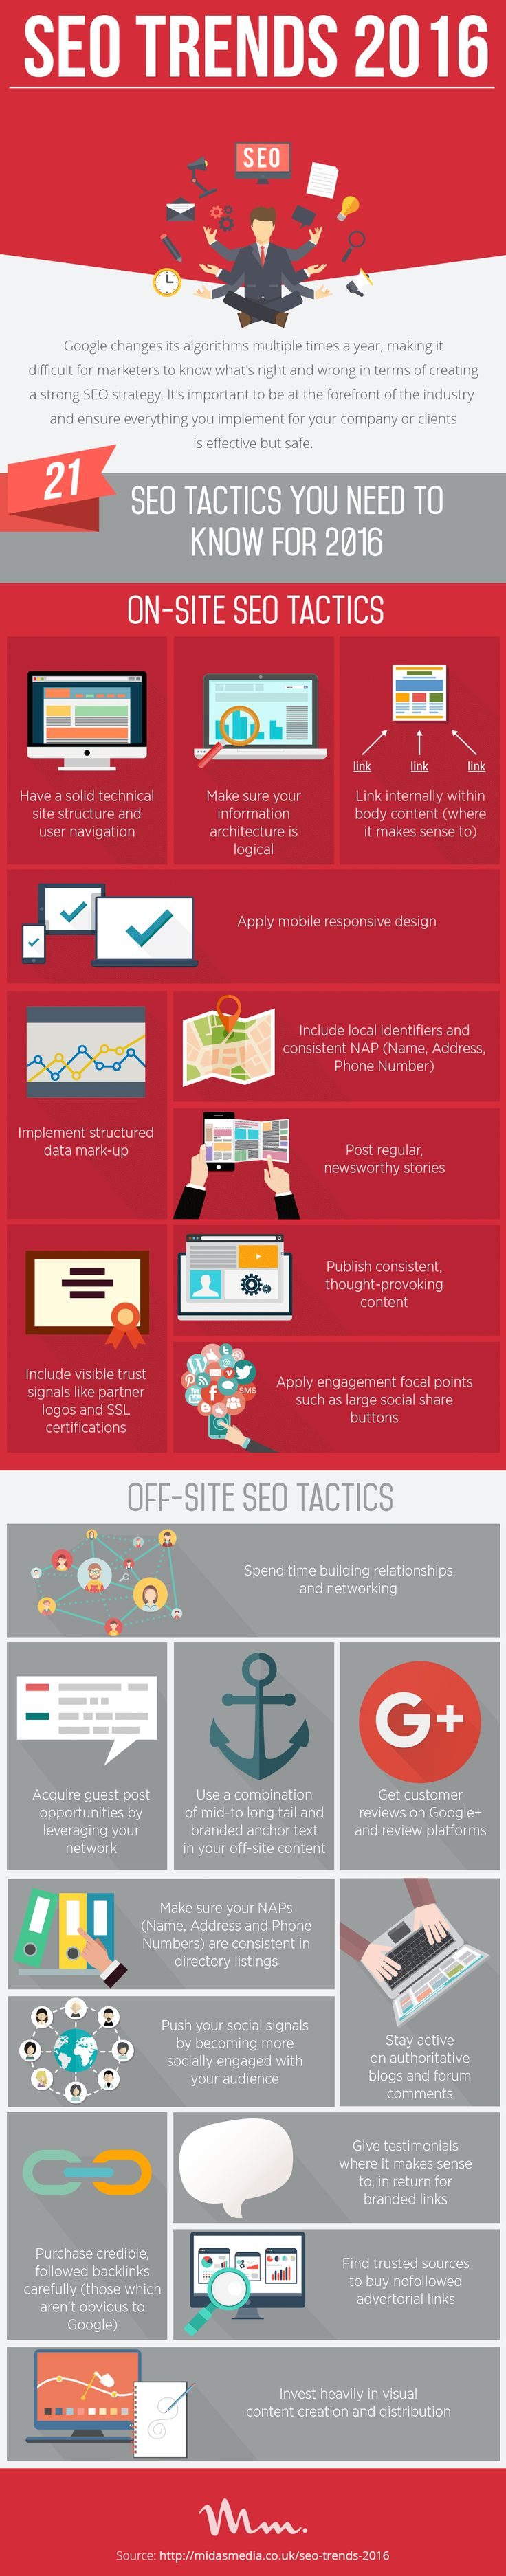 https://social-media-strategy-template.blogspot.com/ #Google changes its algorithm multiple times a year so it can get fairly confusing as to what #SEO tactics you need to employ or avoid. Here's the latest for 2016!